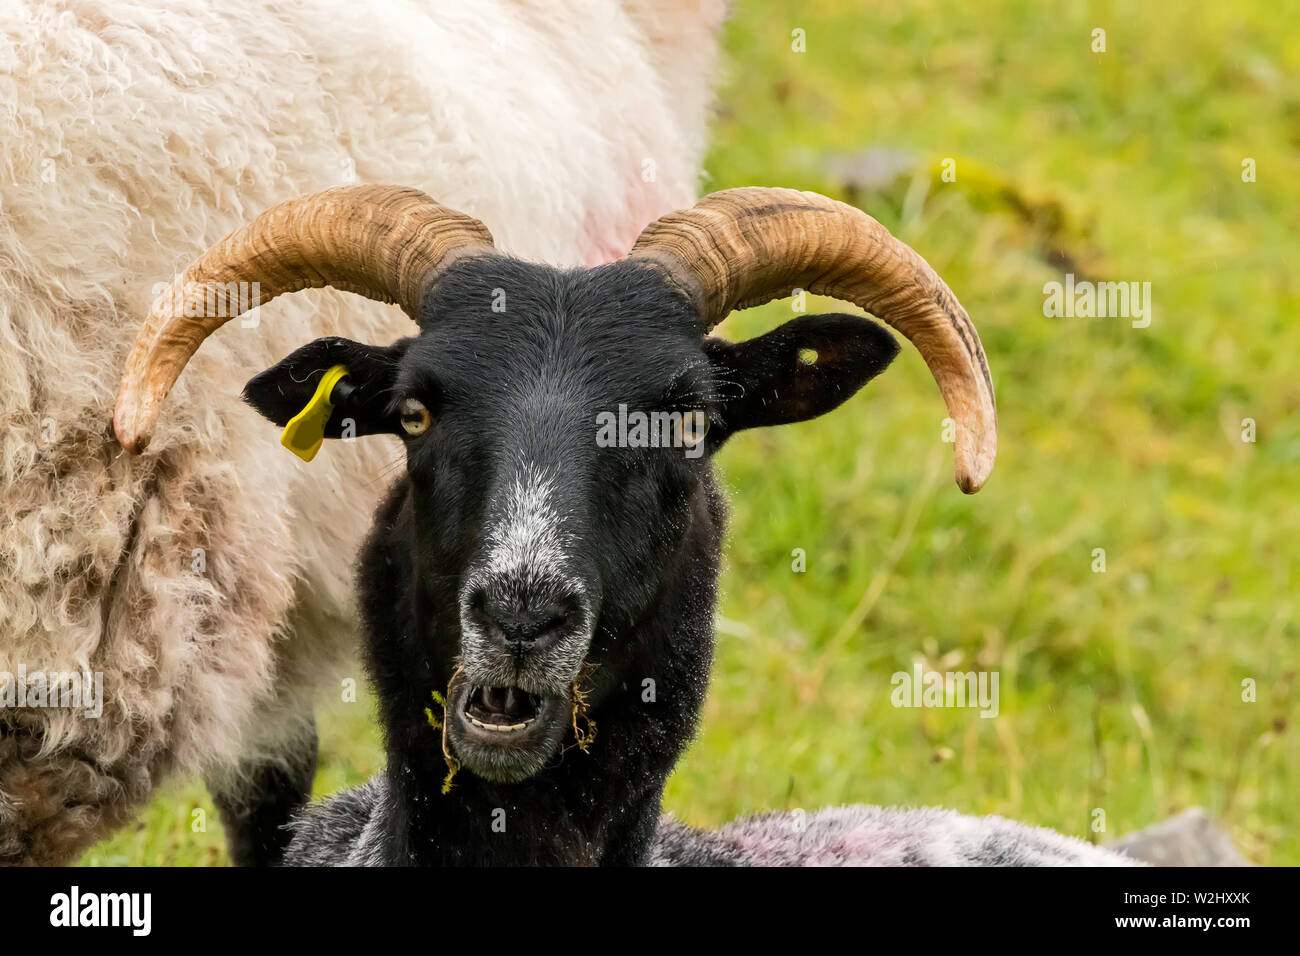 A black headed sheep looking at me, captured in Ireland - Stock Image